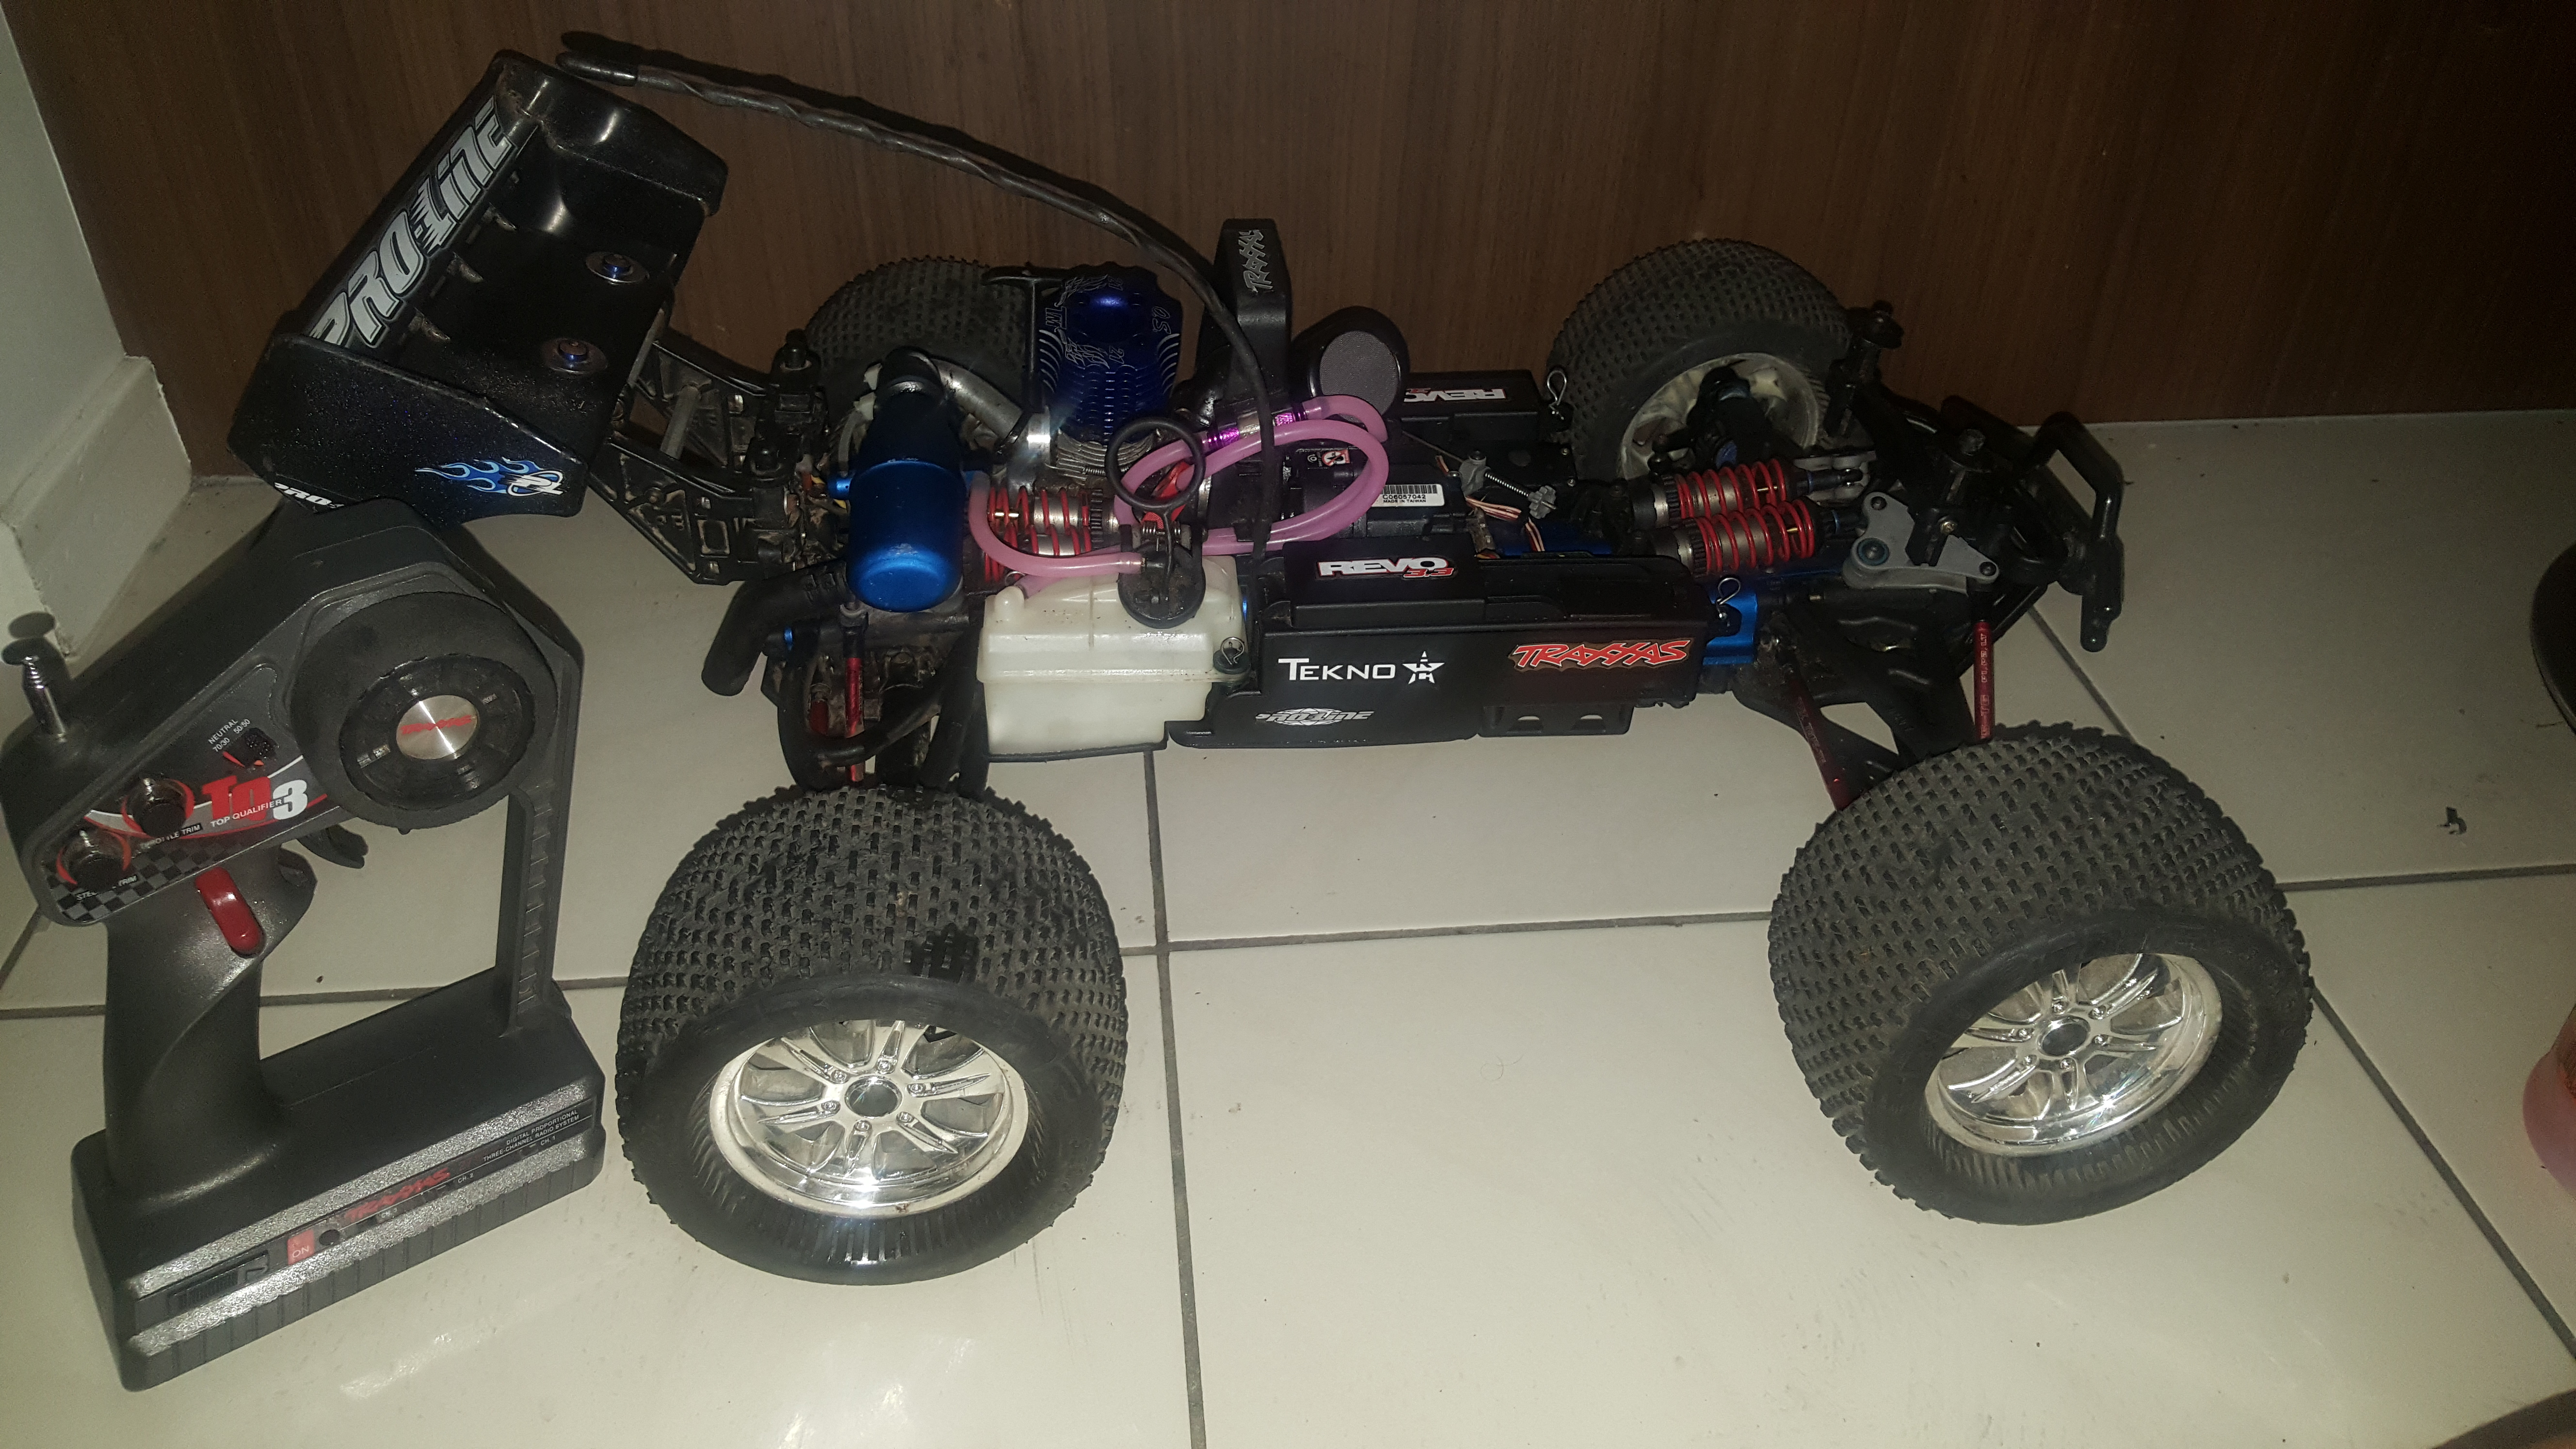 I Bought A Traxxas Revo 3 3 Today - Did I Get A Good Deal